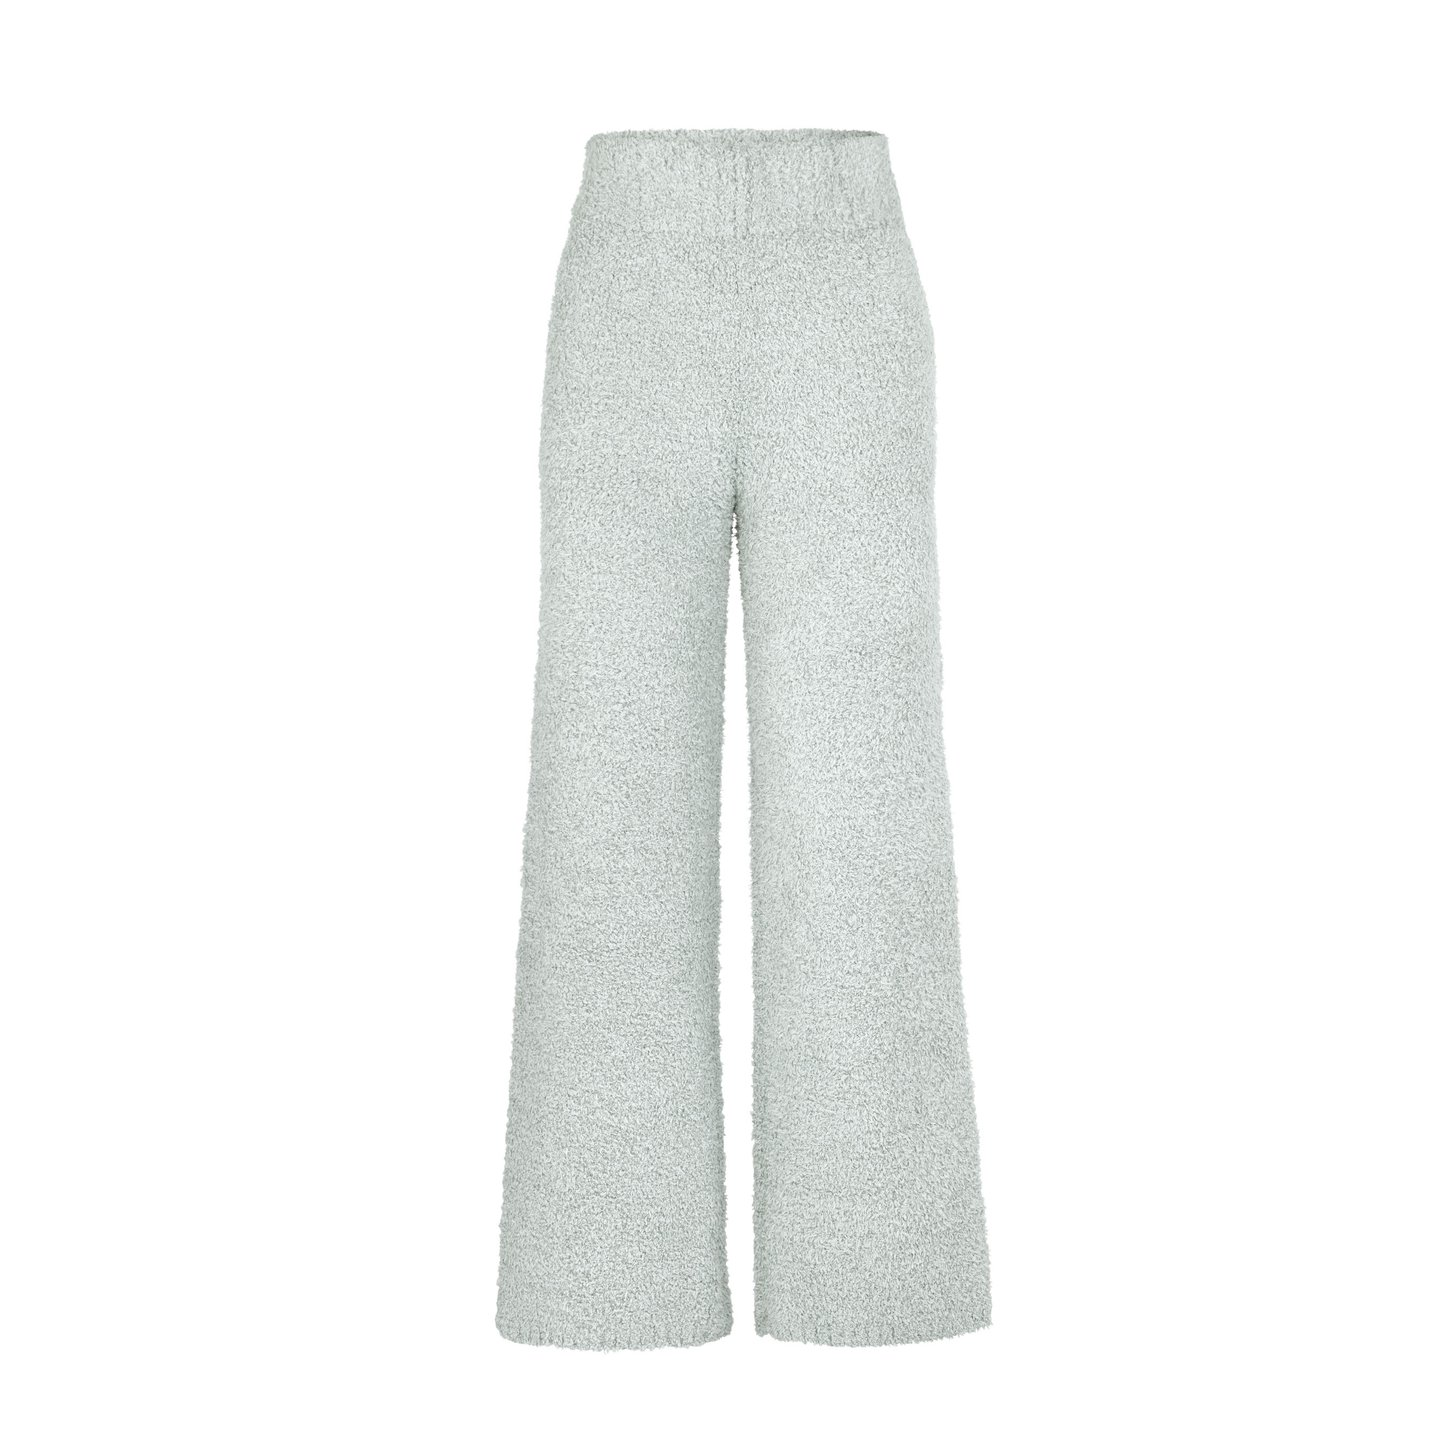 COZY KNIT PANT by Skims, available on skims.com for $93 Kendall Jenner Pants Exact Product